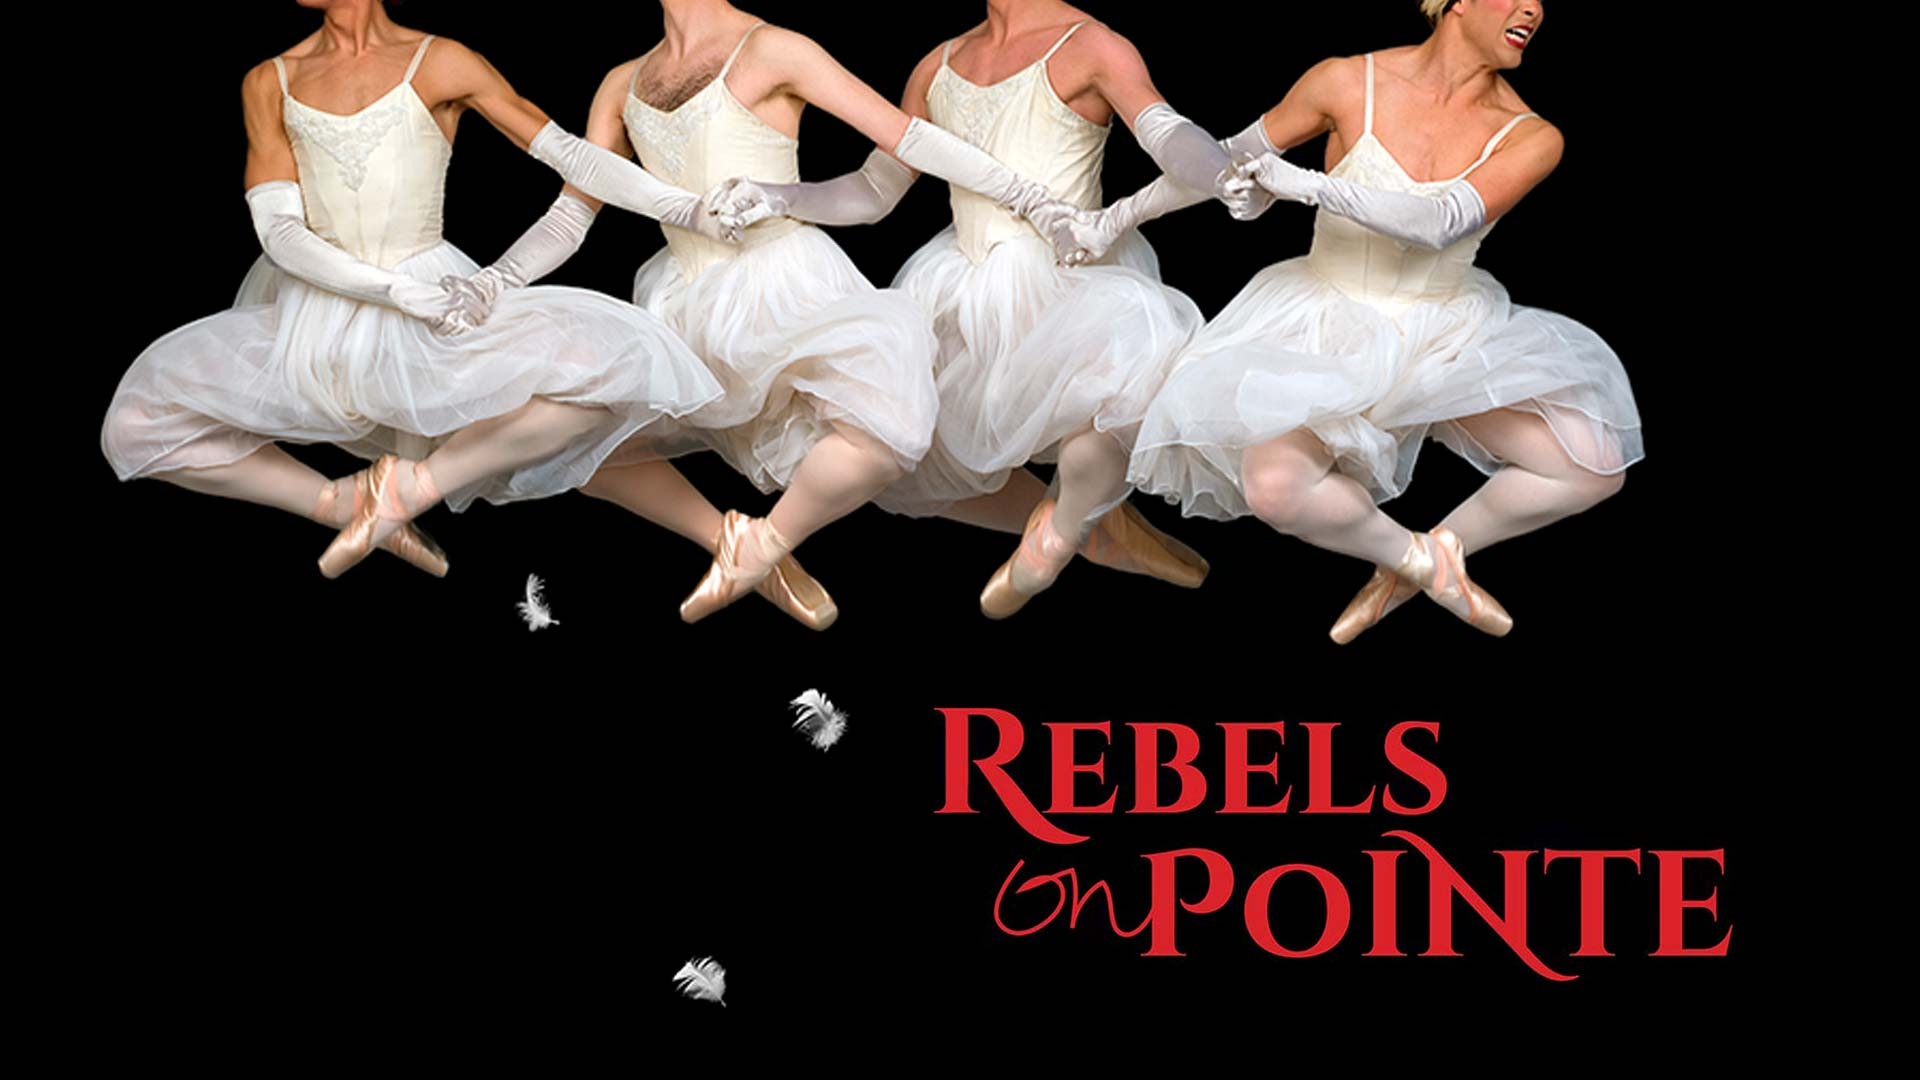 Rebels on Pointe - image